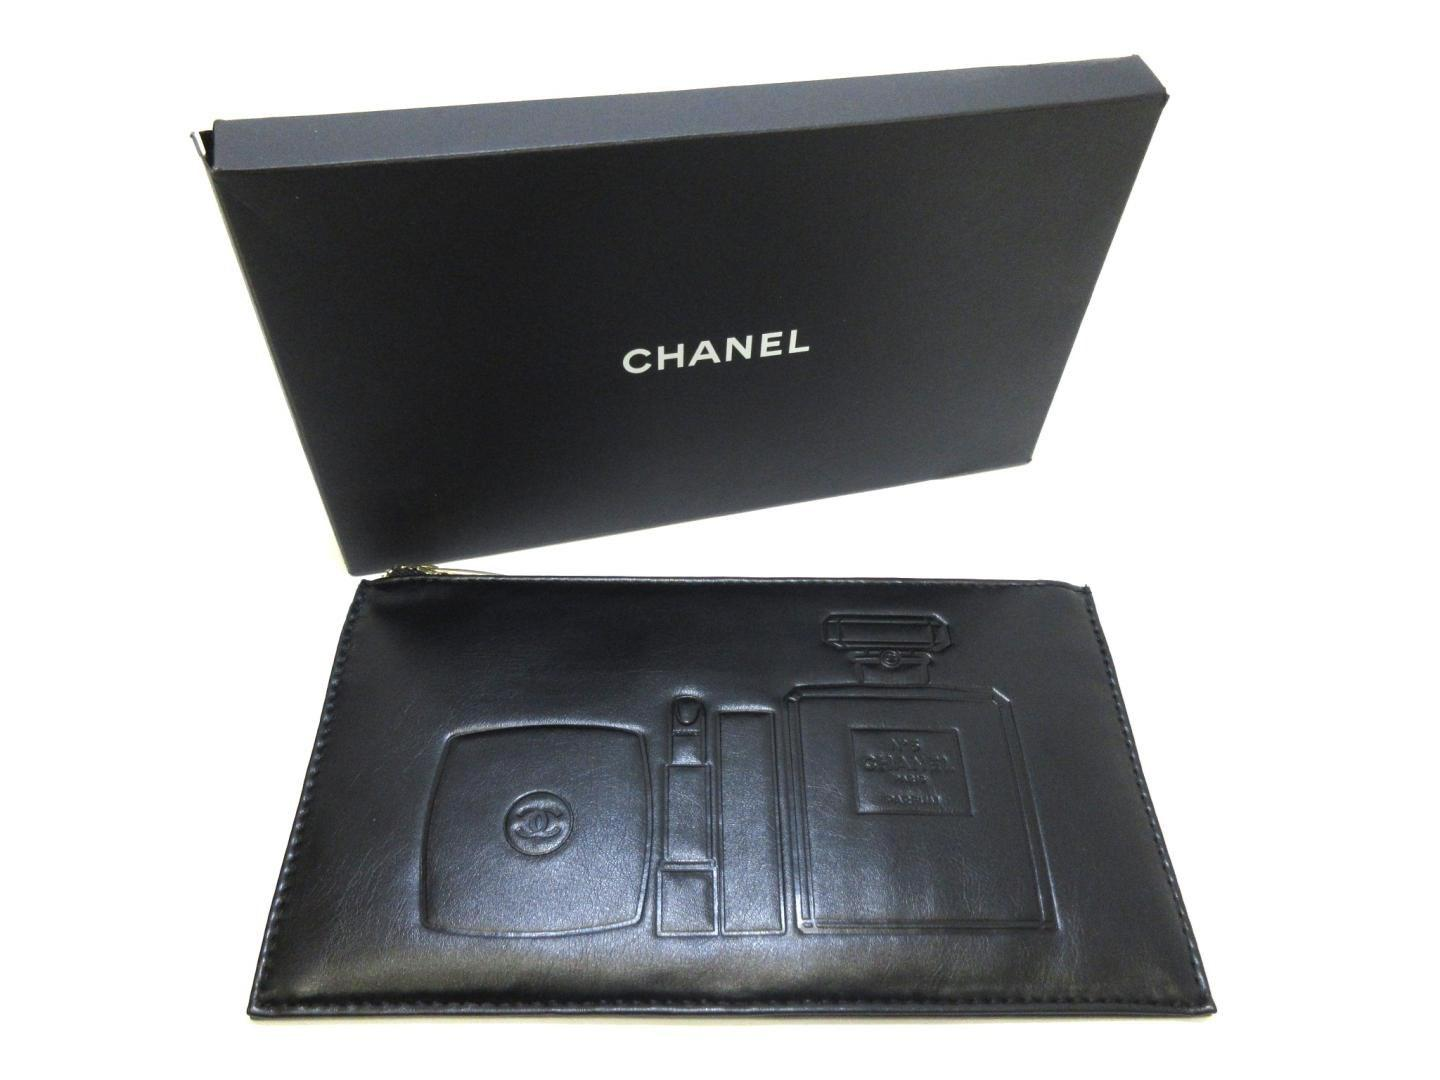 f6d4f727090163 Chanel Beaute Lamb Leather Makeup Pouch Novelty Black in Black - Lyst